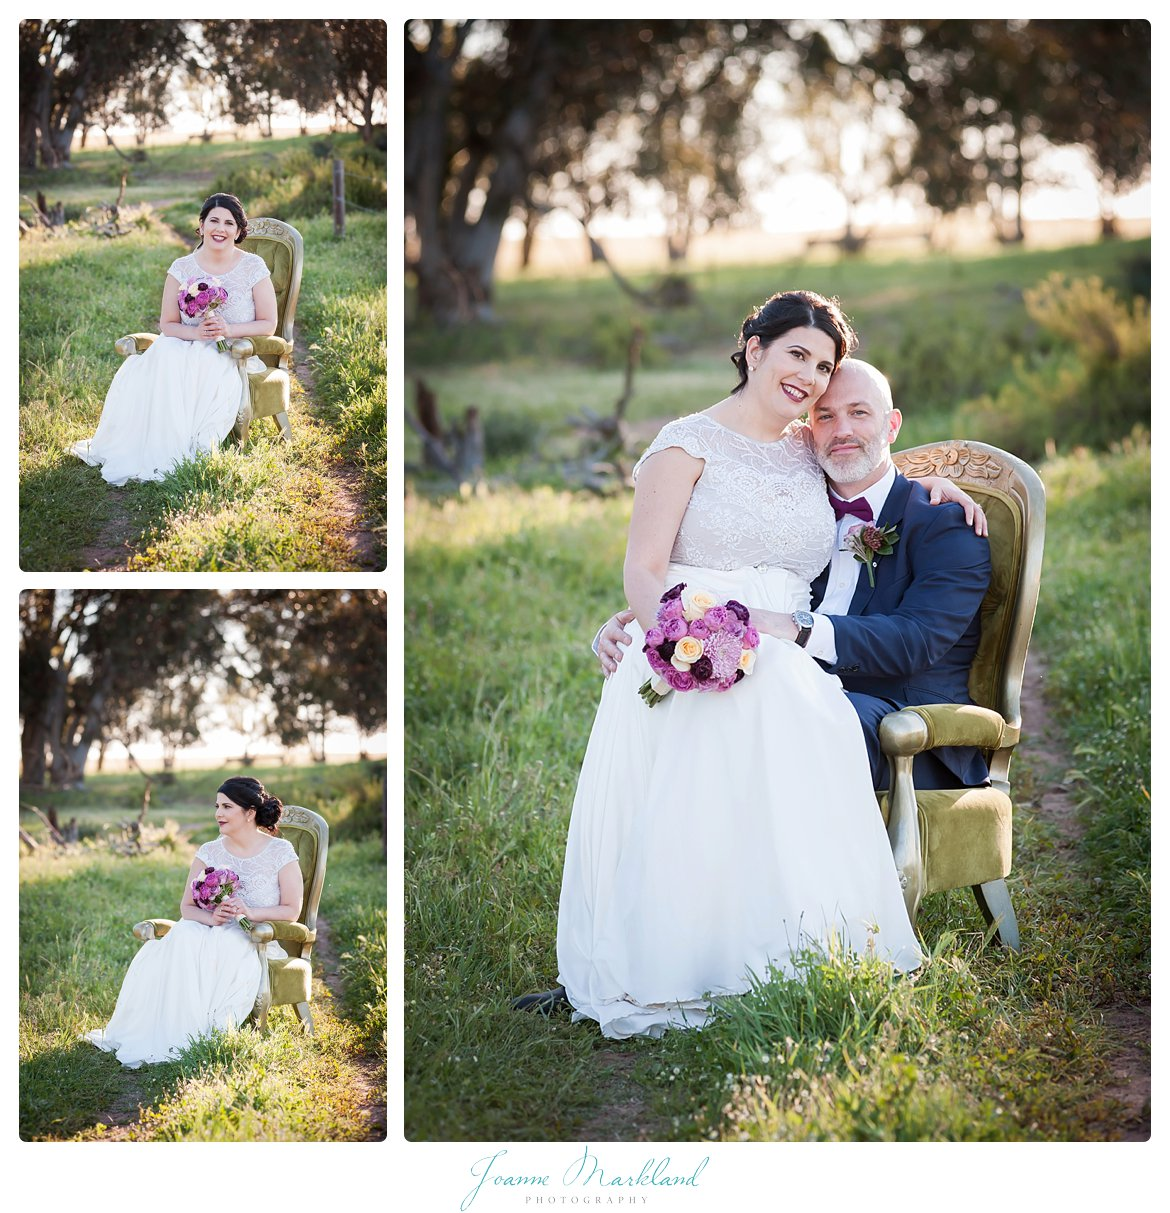 boorwater-wedding-hopefield-west-coast-cape-town-joanne-markland-photography-038